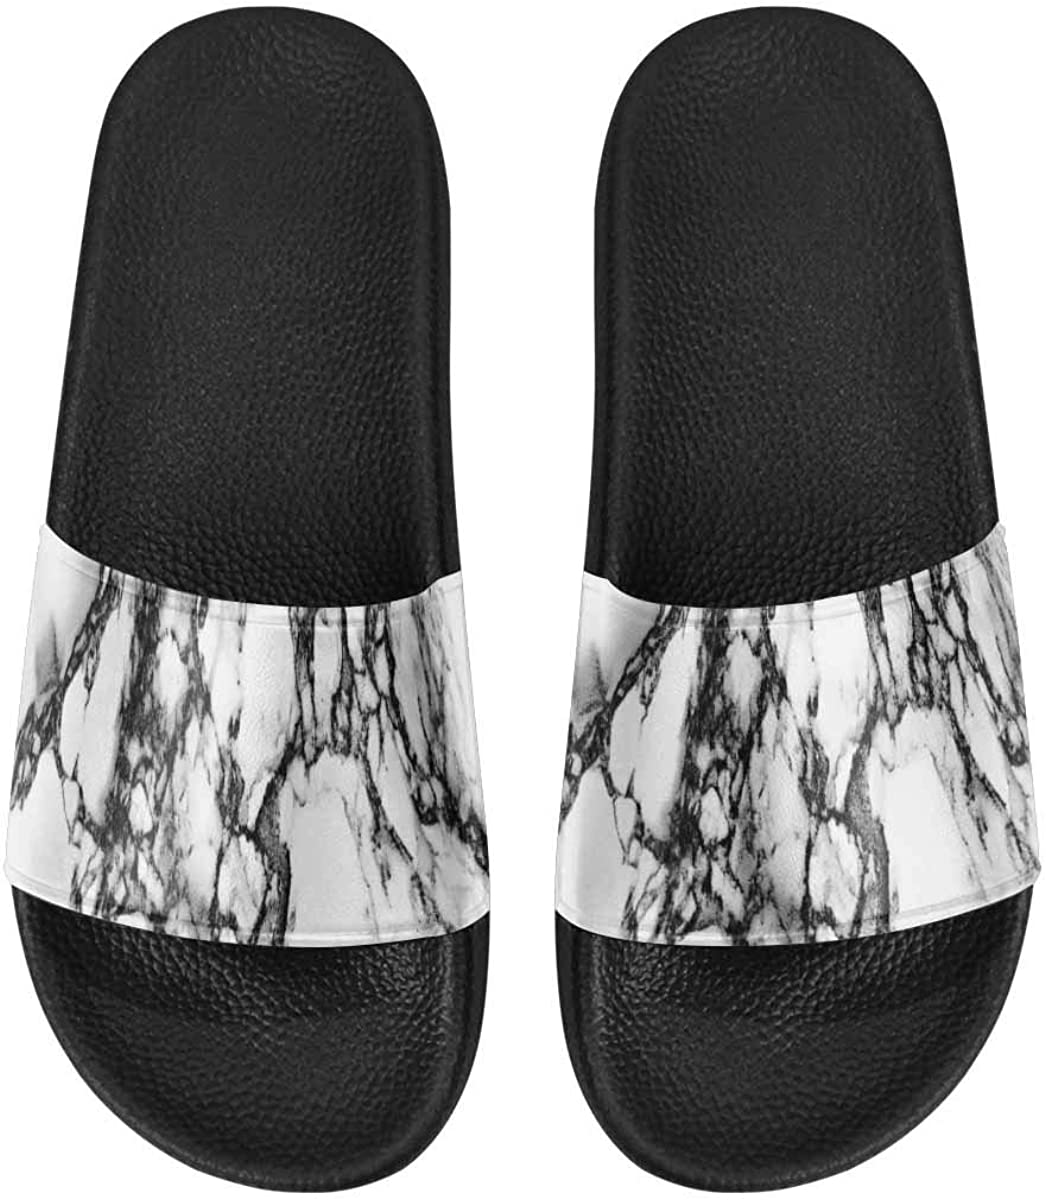 INTERESTPRINT Women's Indoor Lightweight Shower Pool Slippers US6-US12